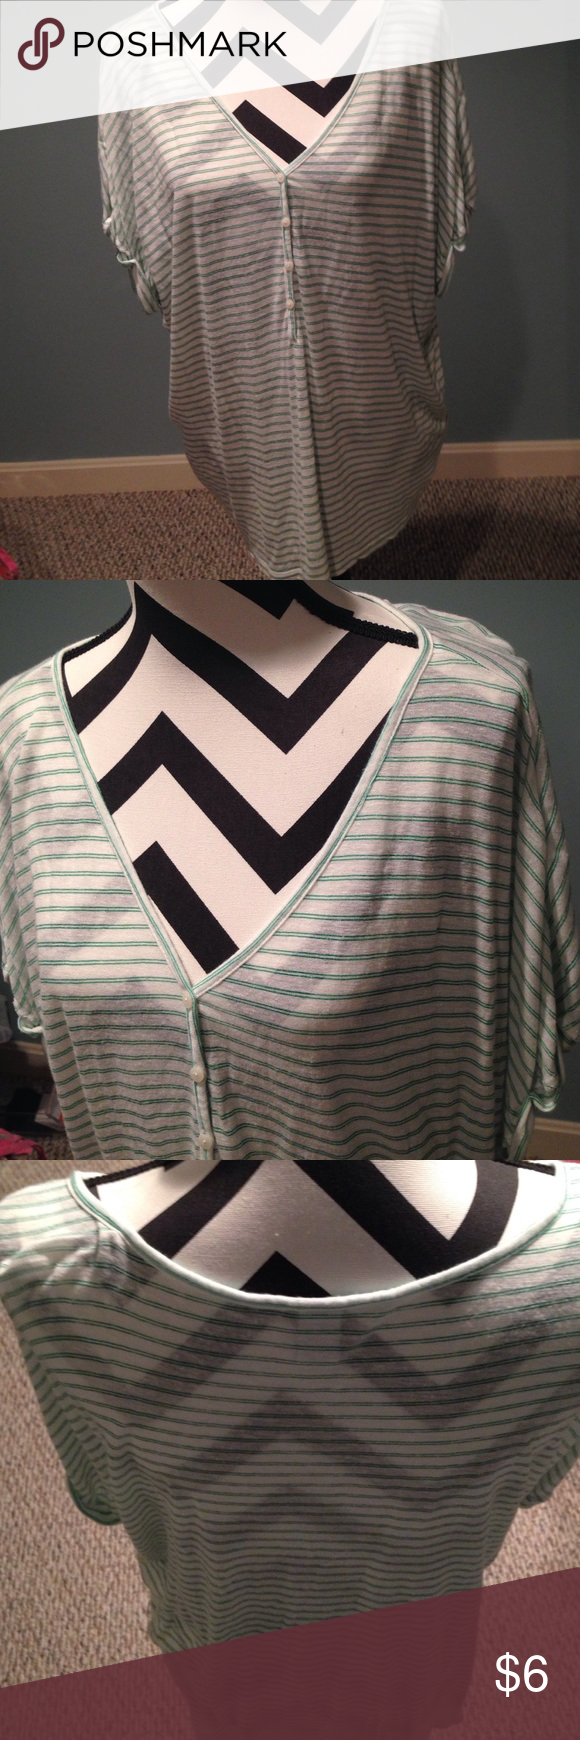 Cute top! Old Navy cute green & white stripe top in good condition. Only worn a couple of times- throw in with a bundle for practically nothing if you're having something shipped anyway!! Old Navy Tops Tees - Short Sleeve